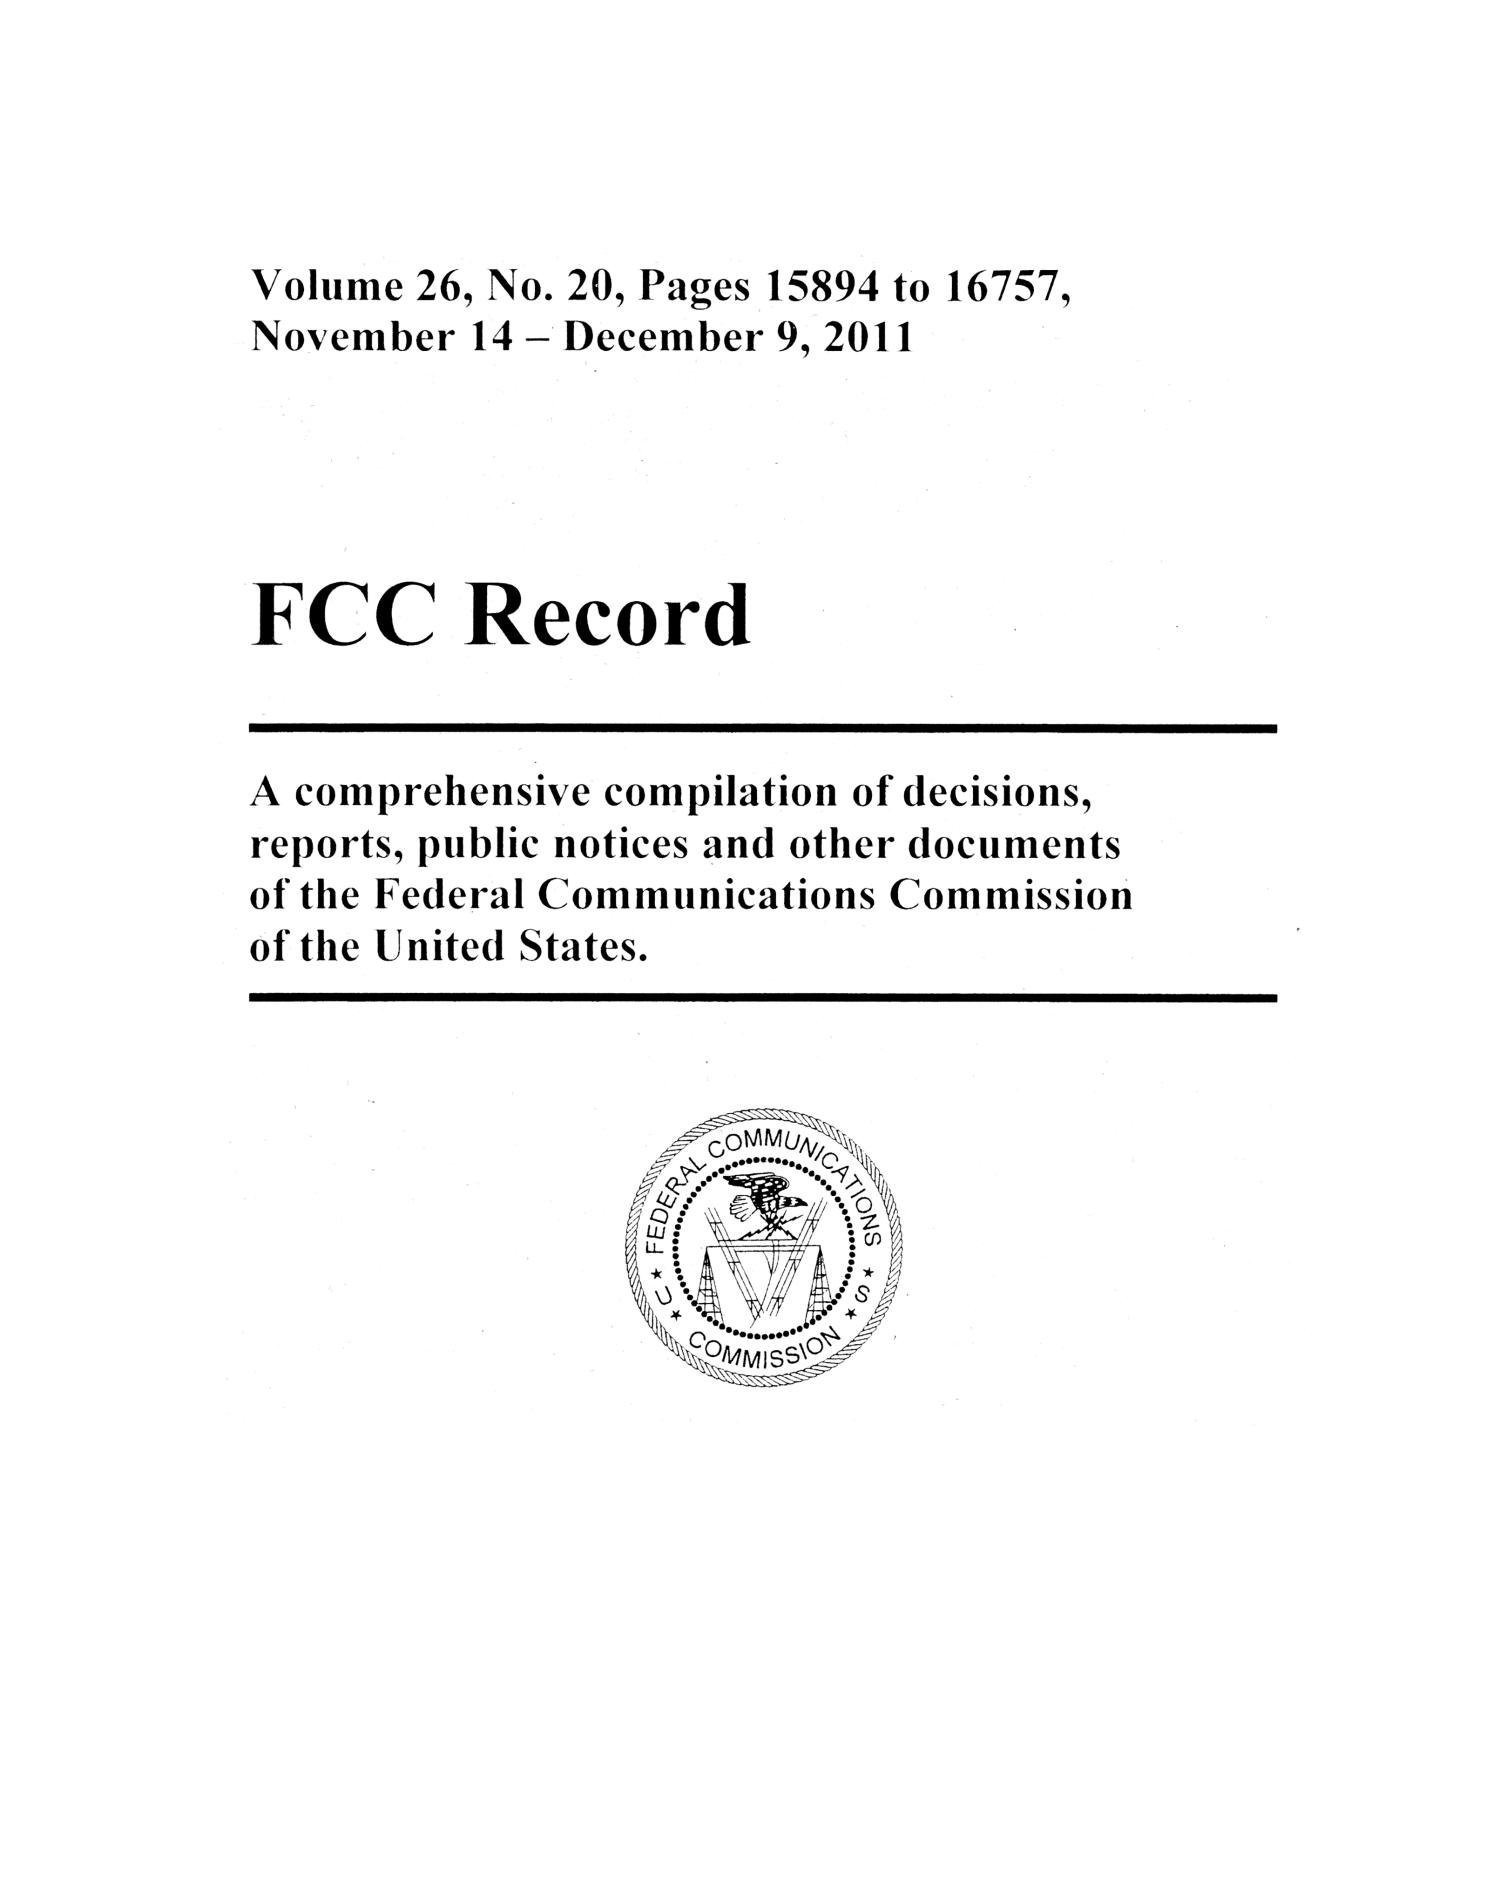 FCC Record, Volume 26, No. 20, Pages 15894 to 16757, November 14 - December 9, 2011                                                                                                      Title Page